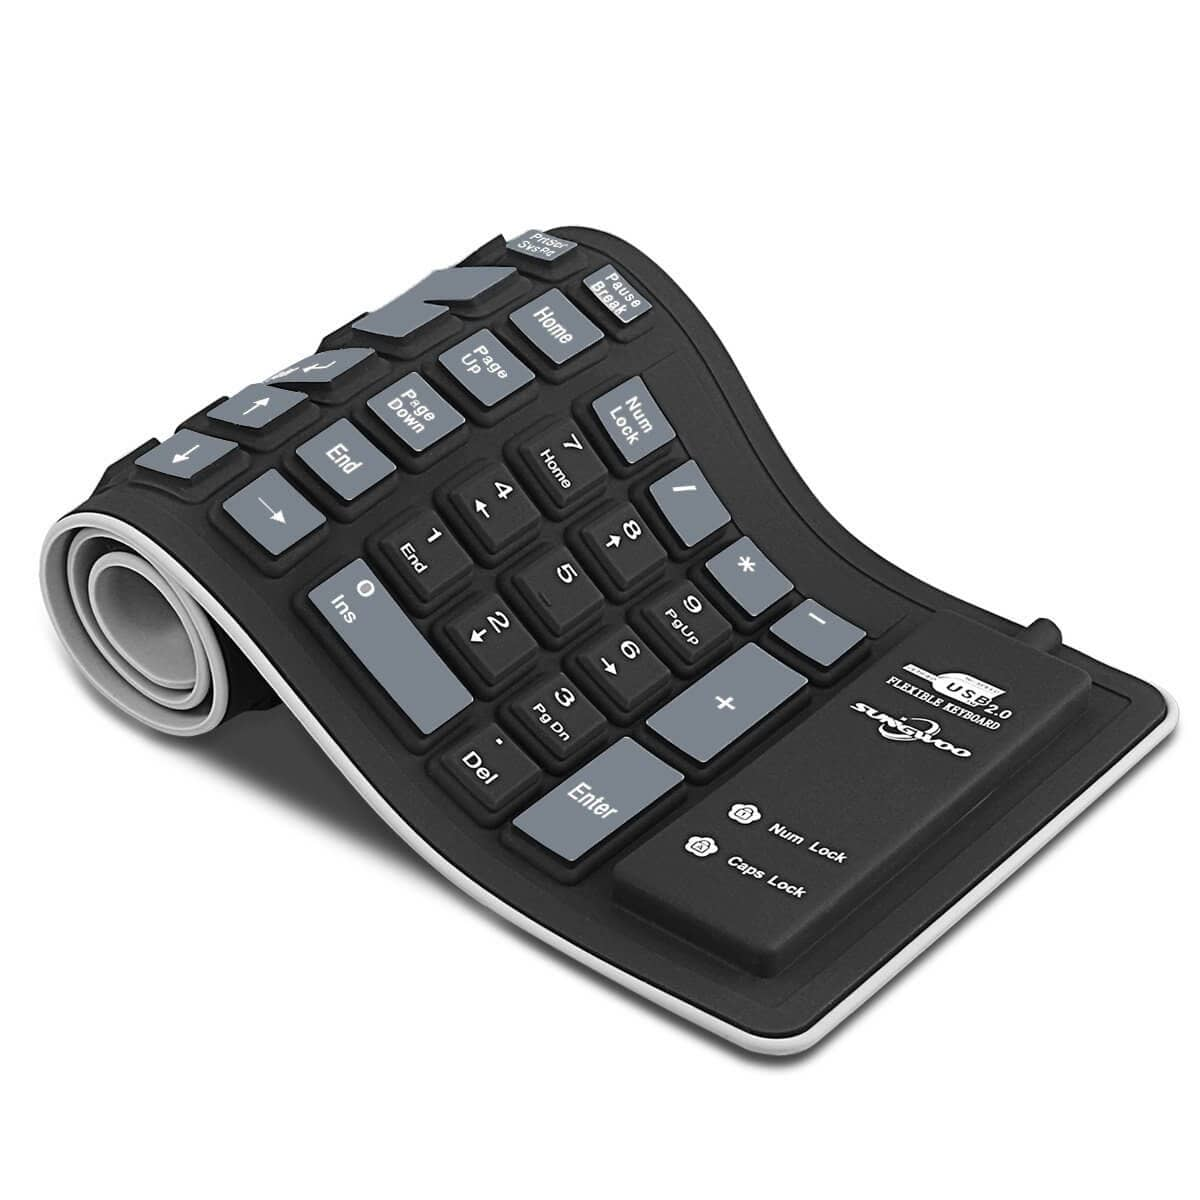 Flexible Keyboard for a Flexible Life